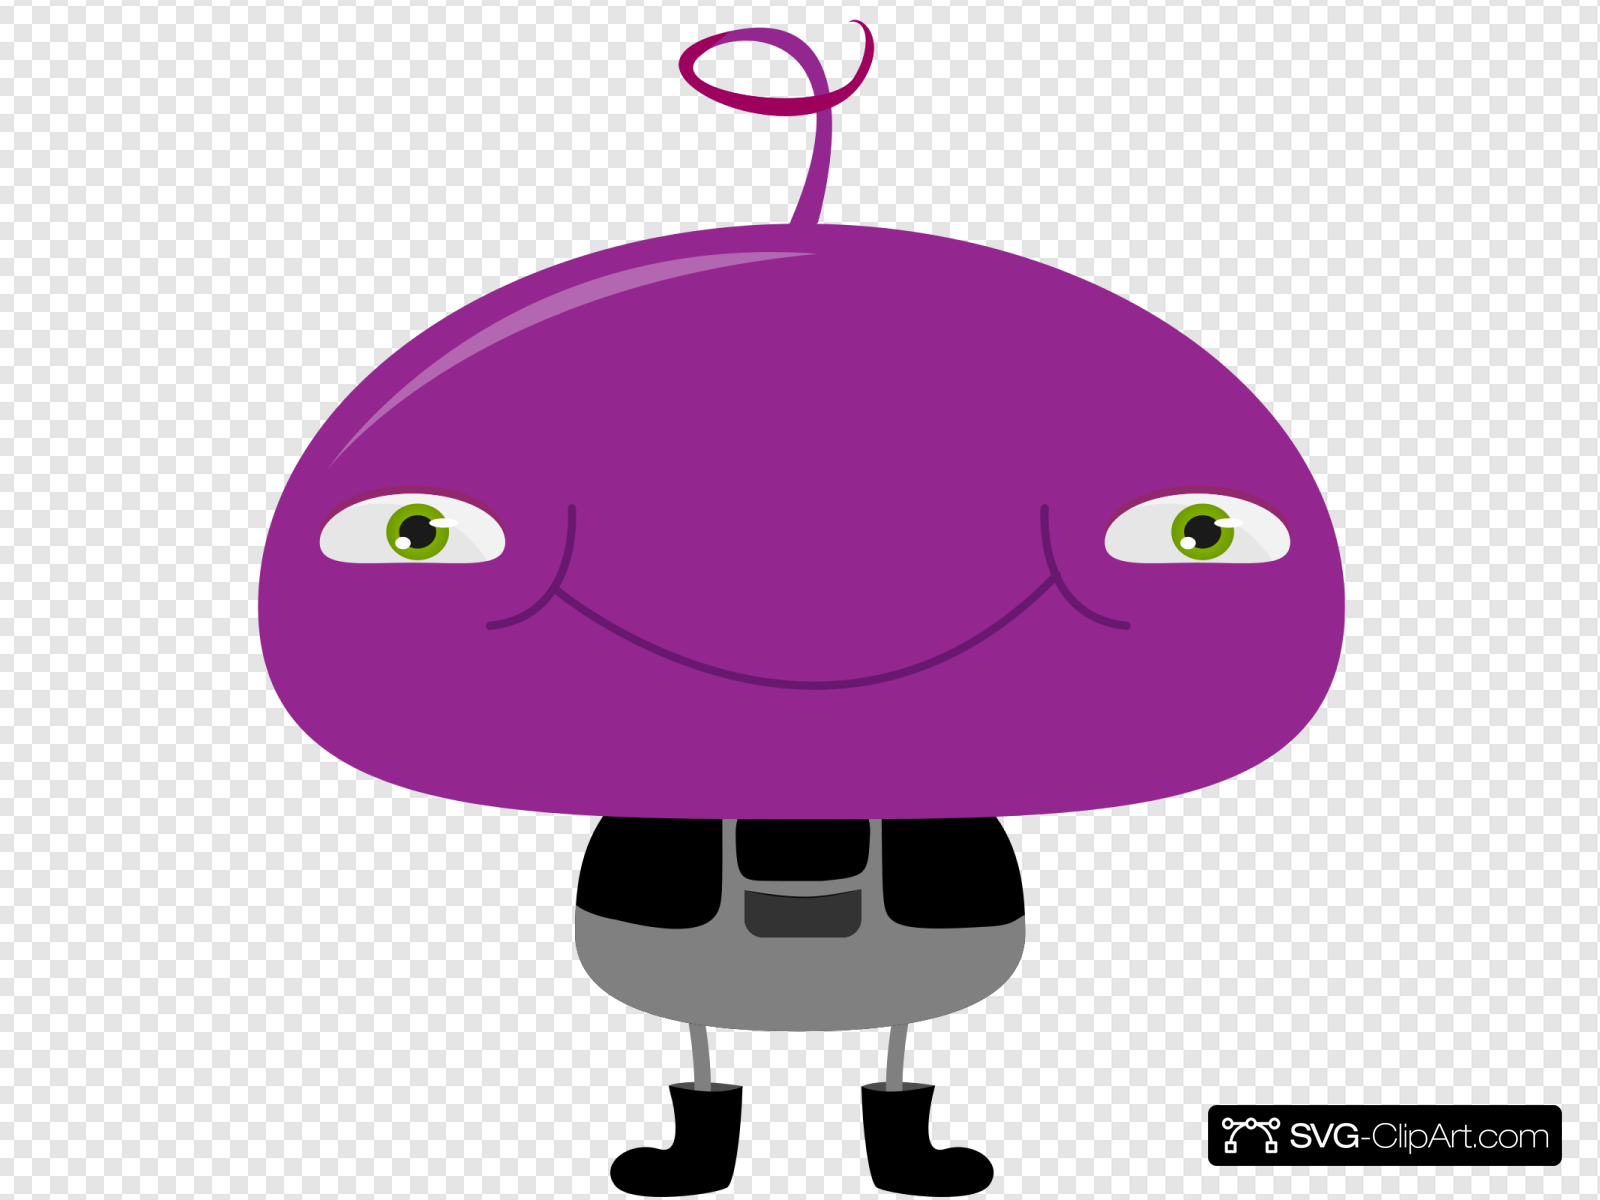 Funny Purple Character Clip art, Icon and SVG.